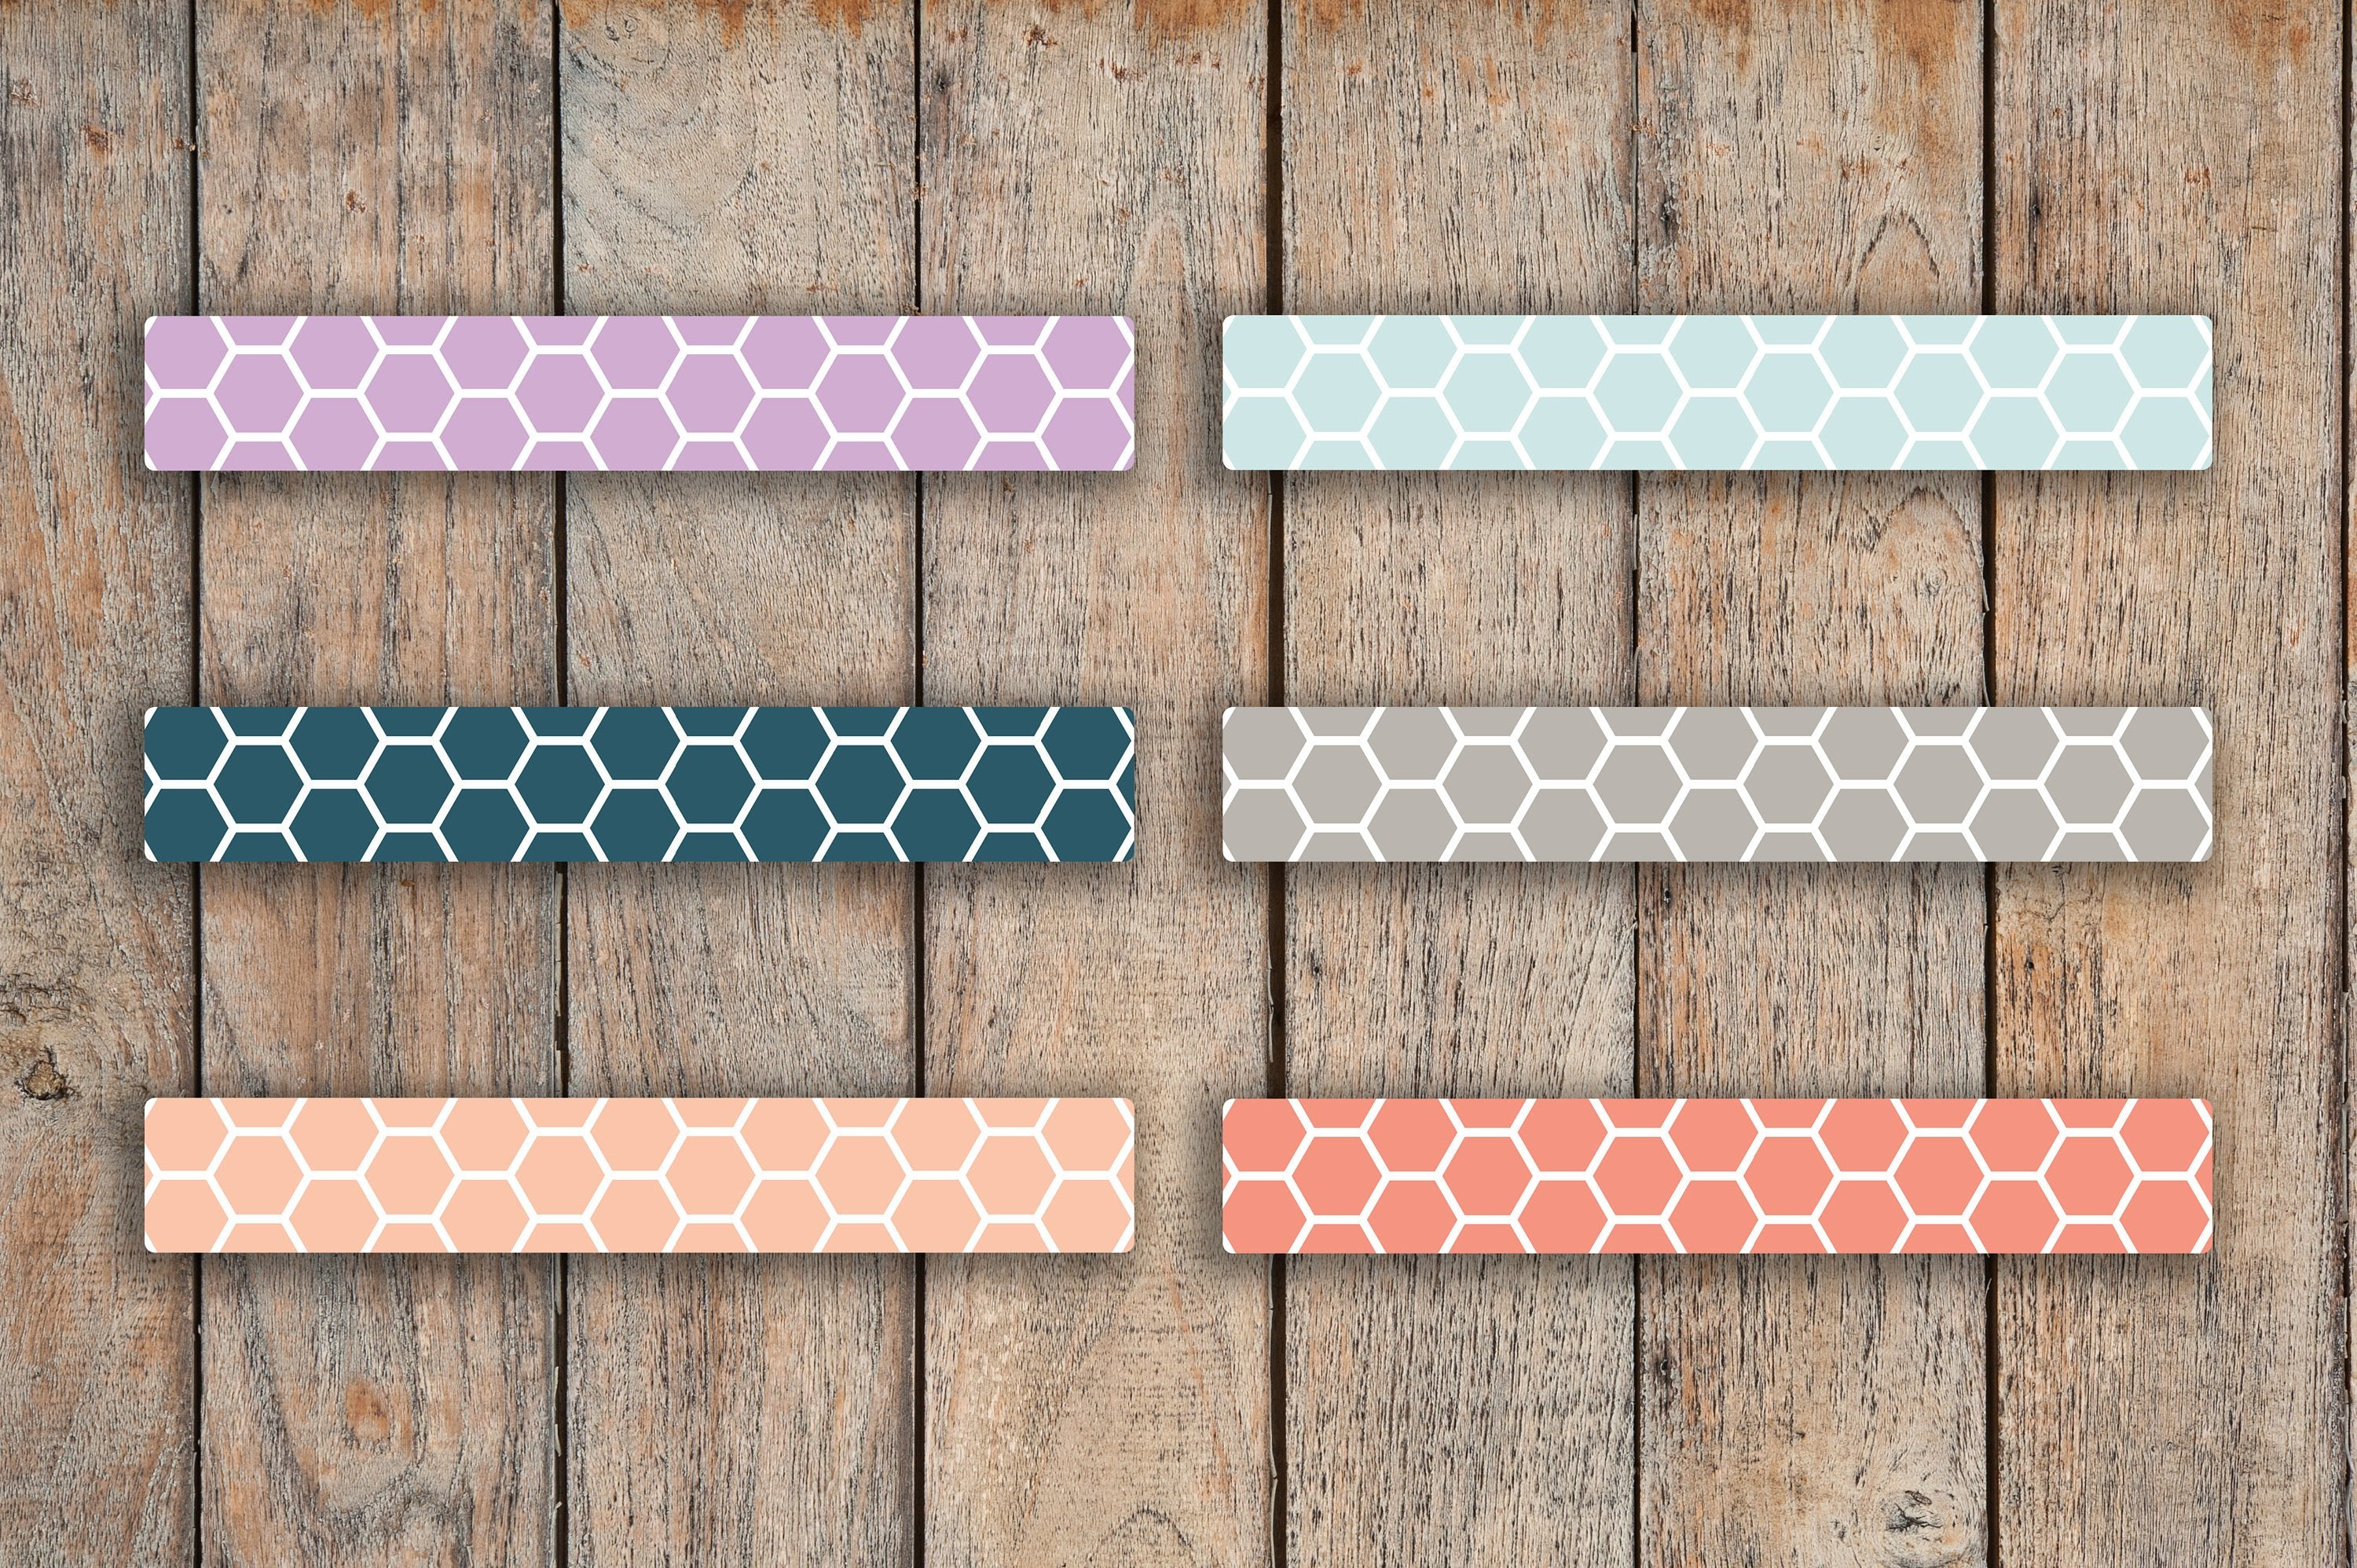 56 Bound & A5 CLASSIC Hexagon Divider Strips Stickers for 2018 inkWELL Press Planners IWP-L39